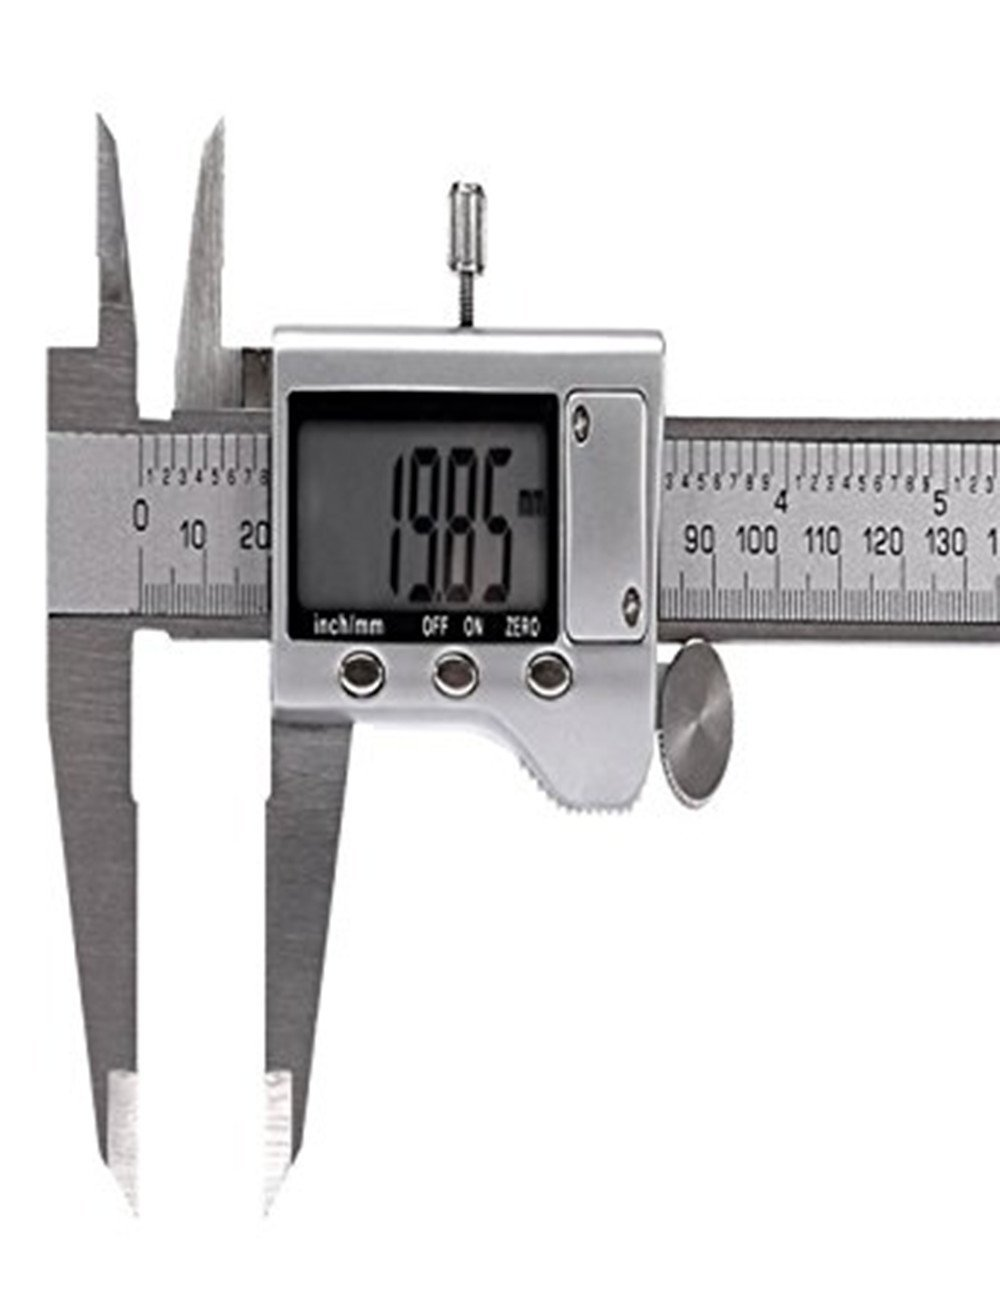 Digital Vernier Caliper with Extra-Large LCD Screen, Stainless Steel Caliper Measuring length 150 mm/6 Inch Electronic Vernier Caliper Measuring Tool IP54 Water Resistant High Precision Argent